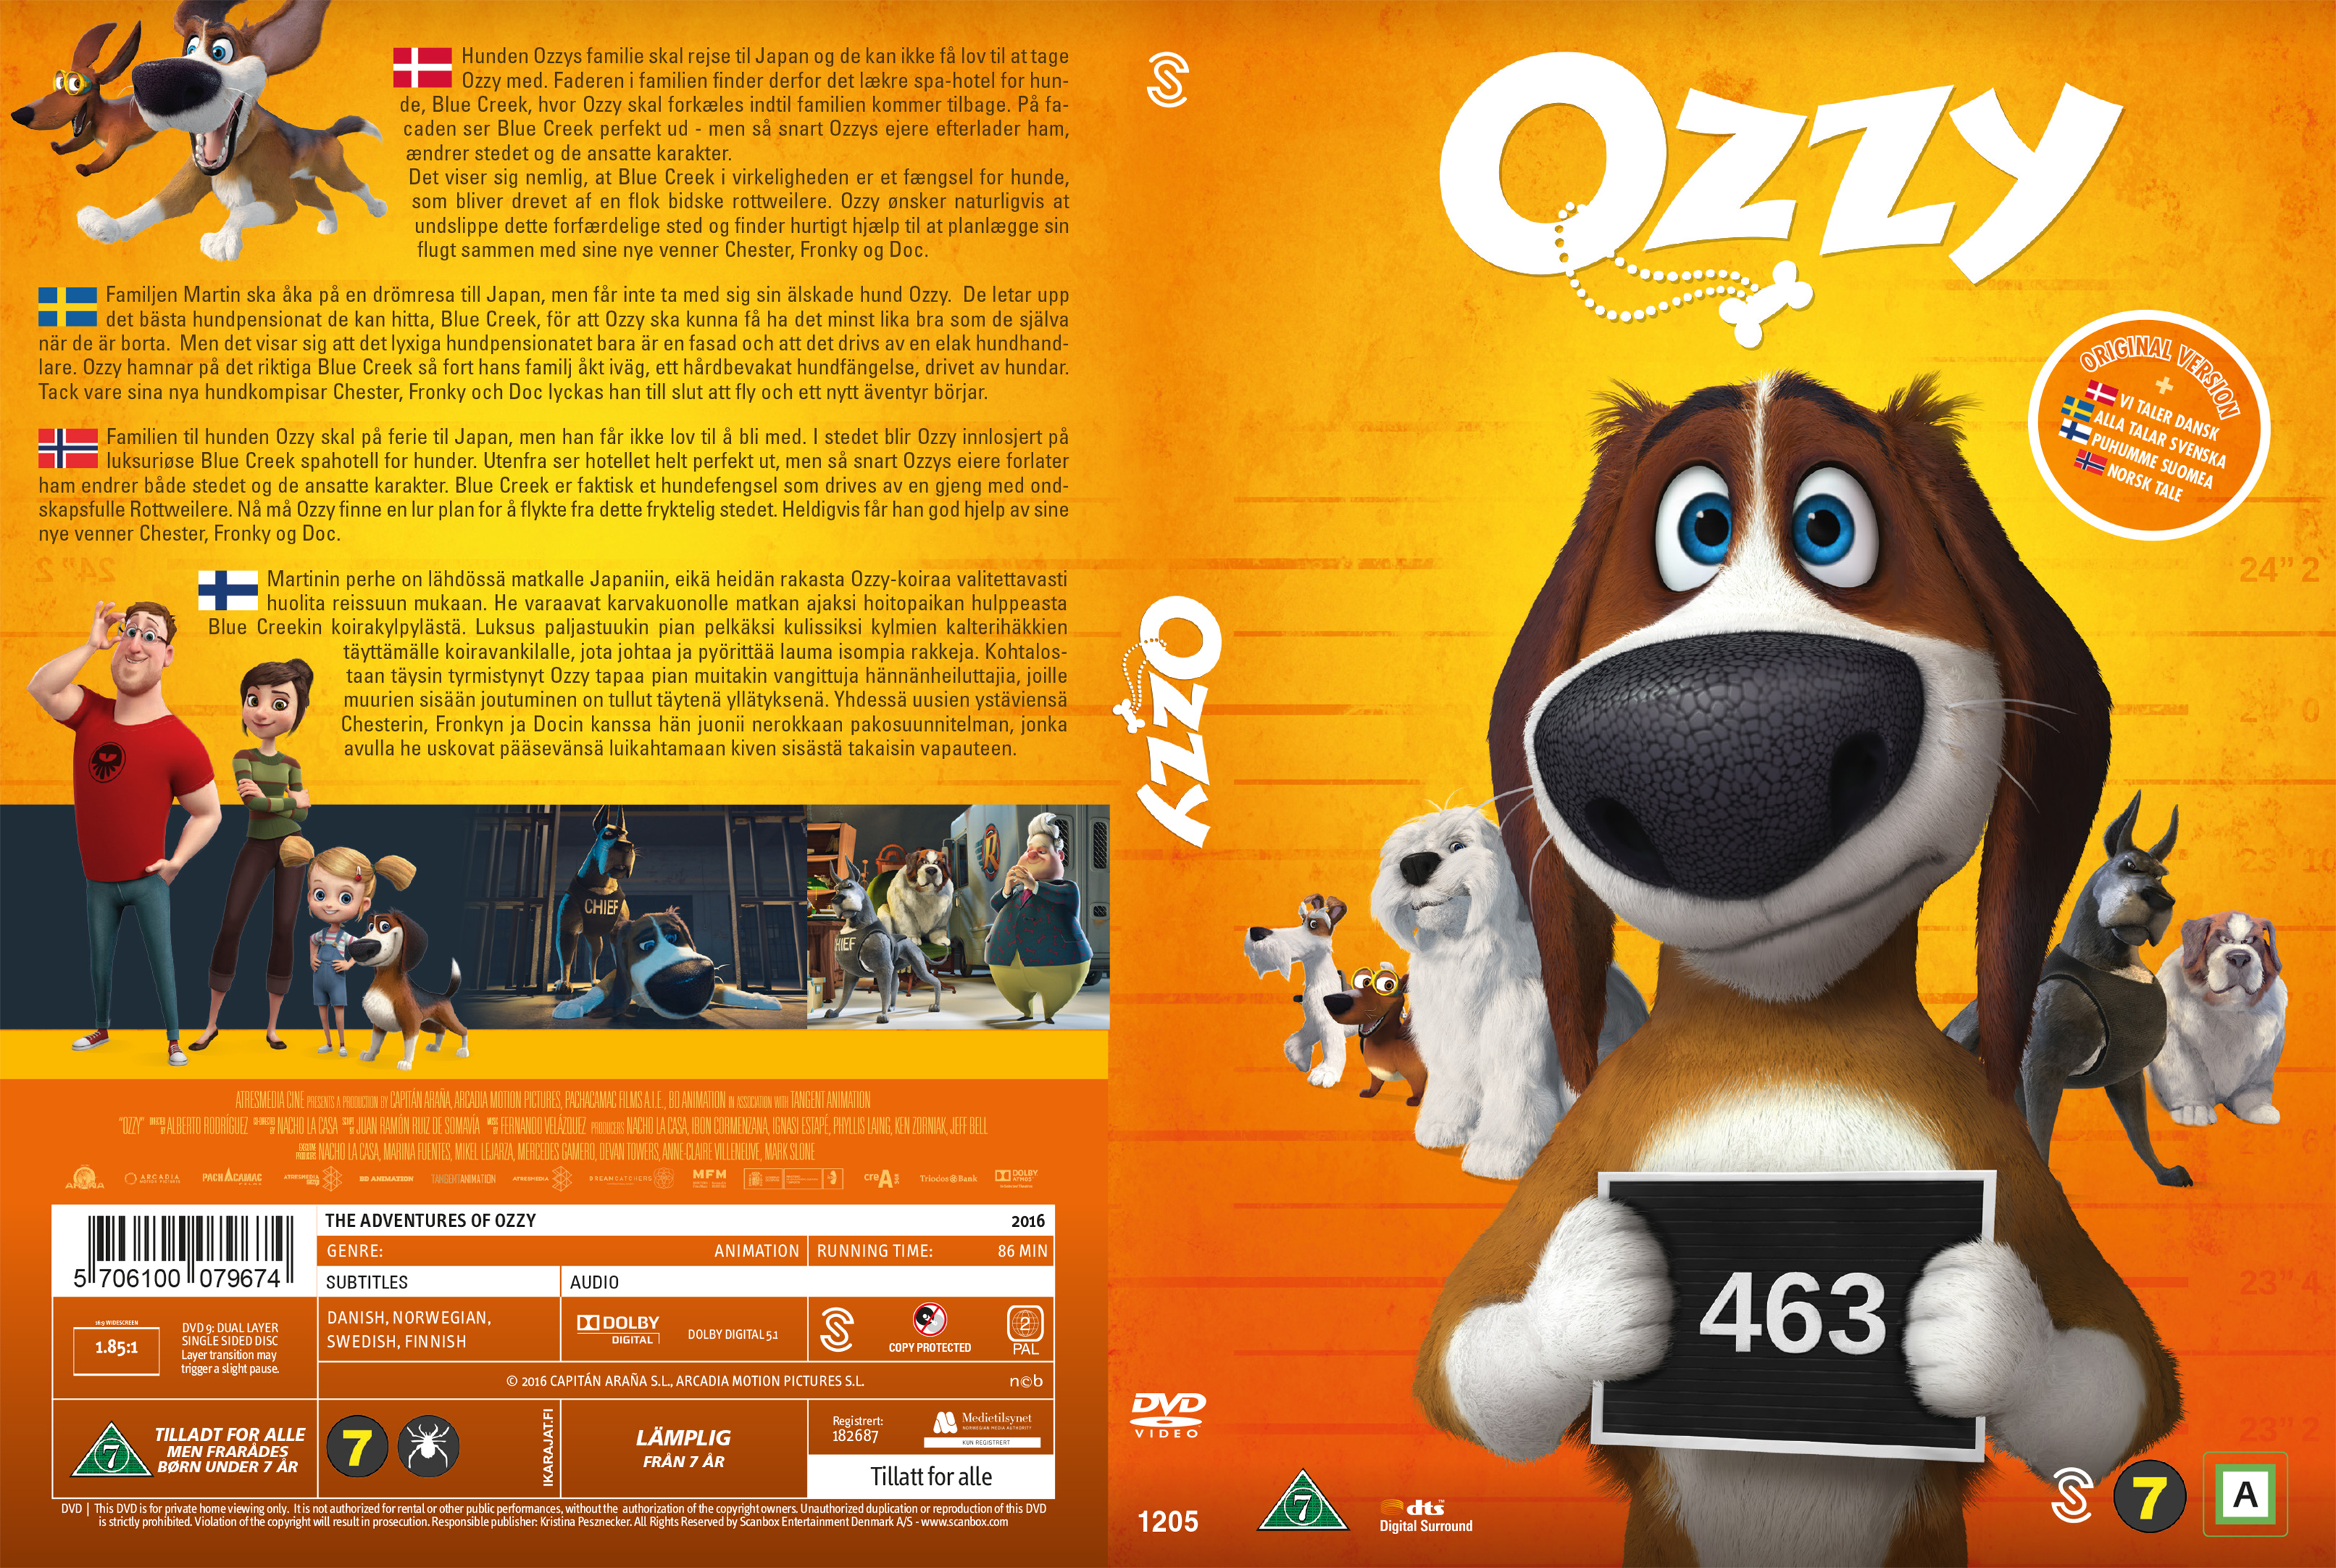 covers box sk the adventures of ozzy nordic 2016 high quality dvd blueray movie. Black Bedroom Furniture Sets. Home Design Ideas